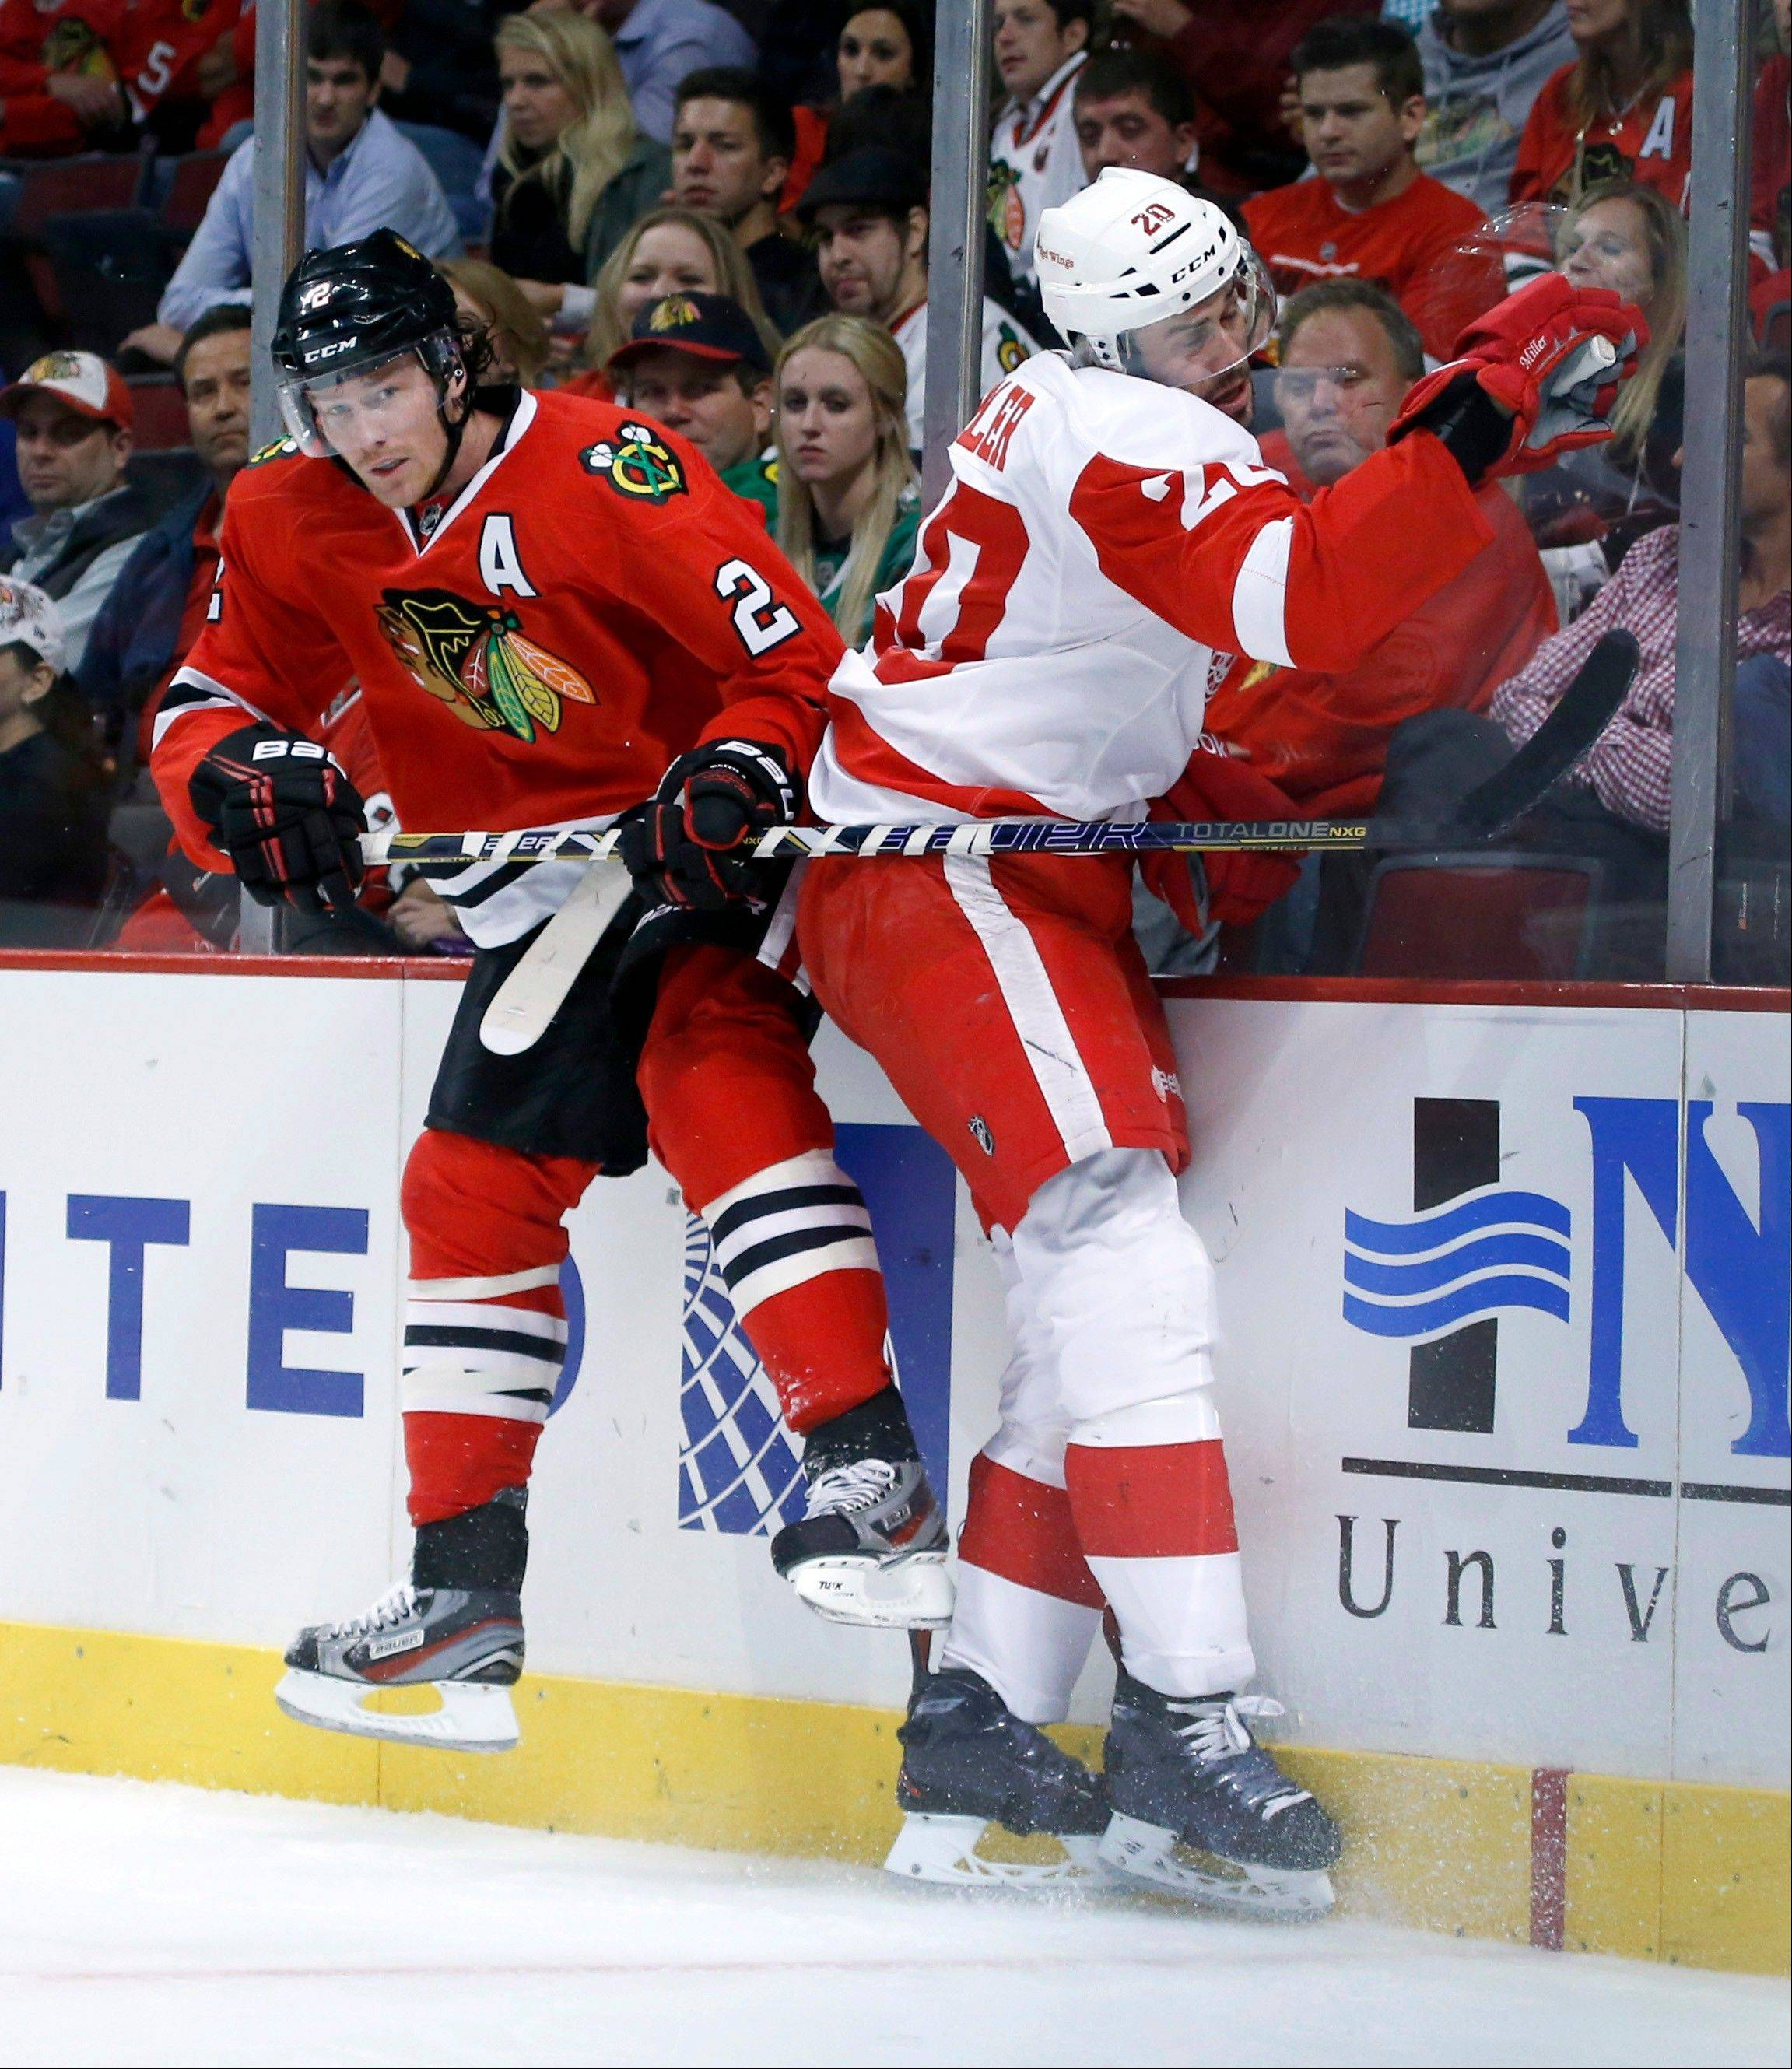 Blackhawks win before rivalry put on hold